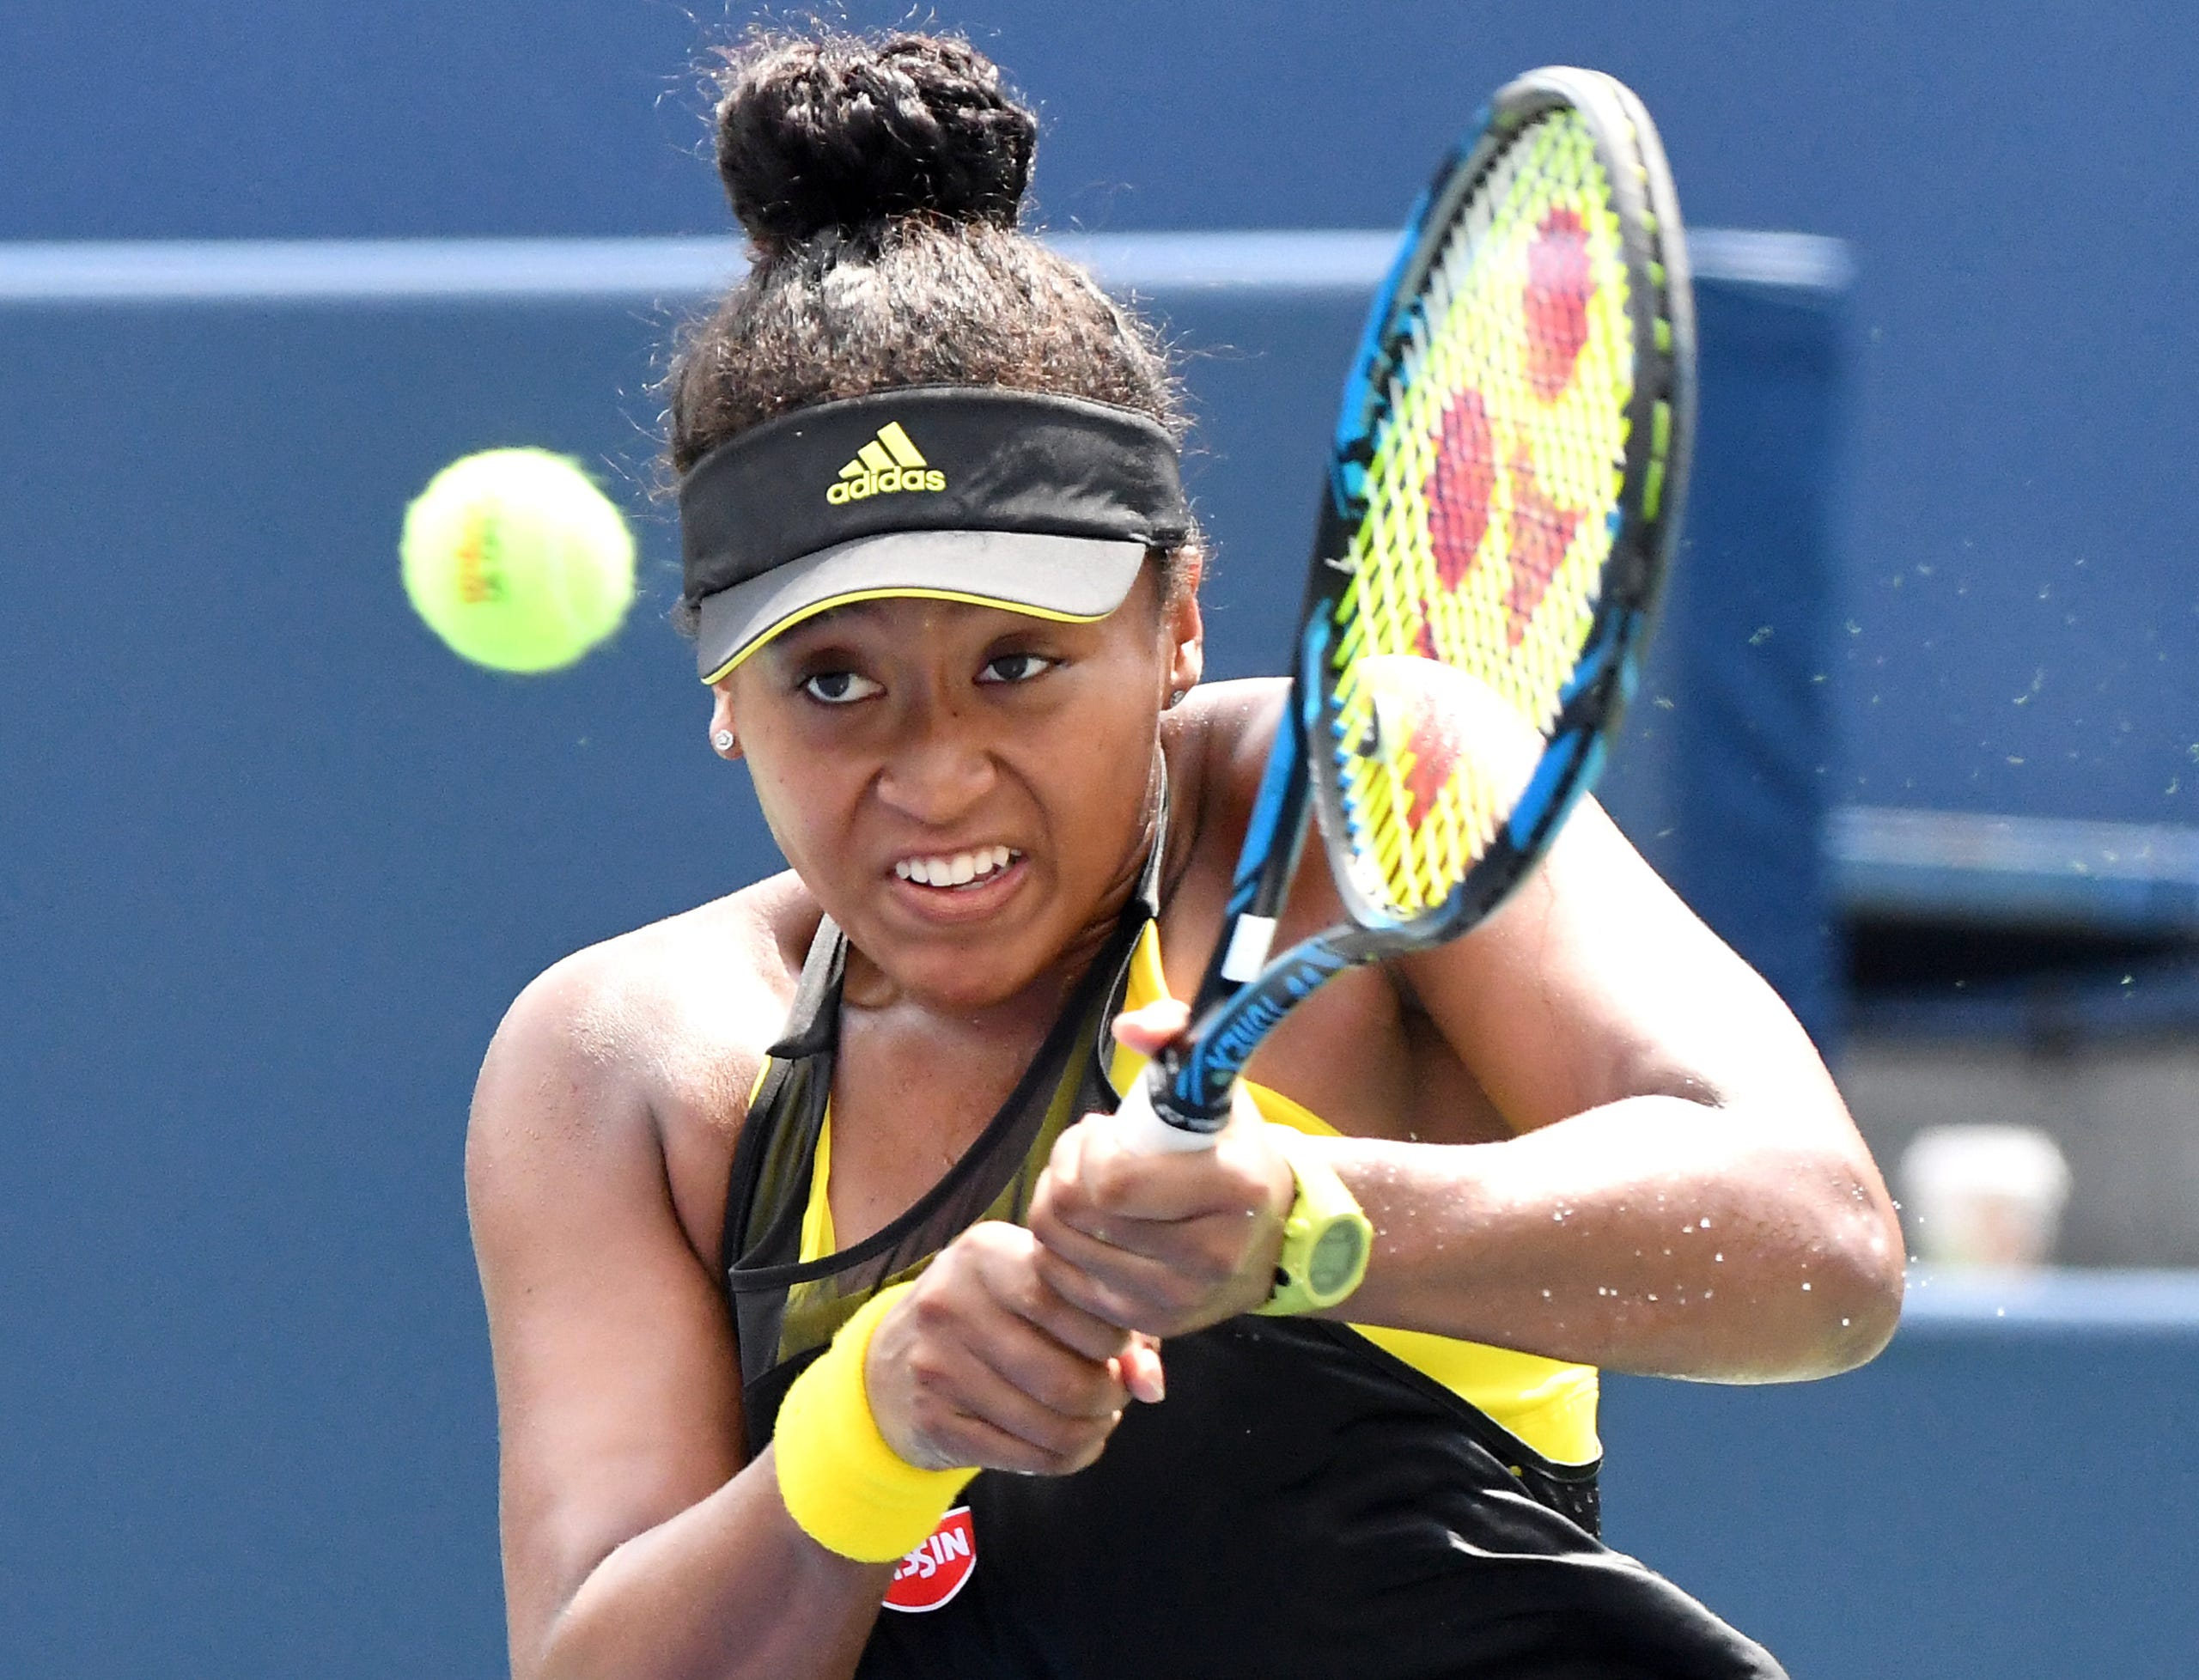 Naomi Osaka plays a shot against Karolina Pliskova of the Czech Republic during the Rogers Cup tennis tournament at Aviva Centre on Aug. 10, 2017.